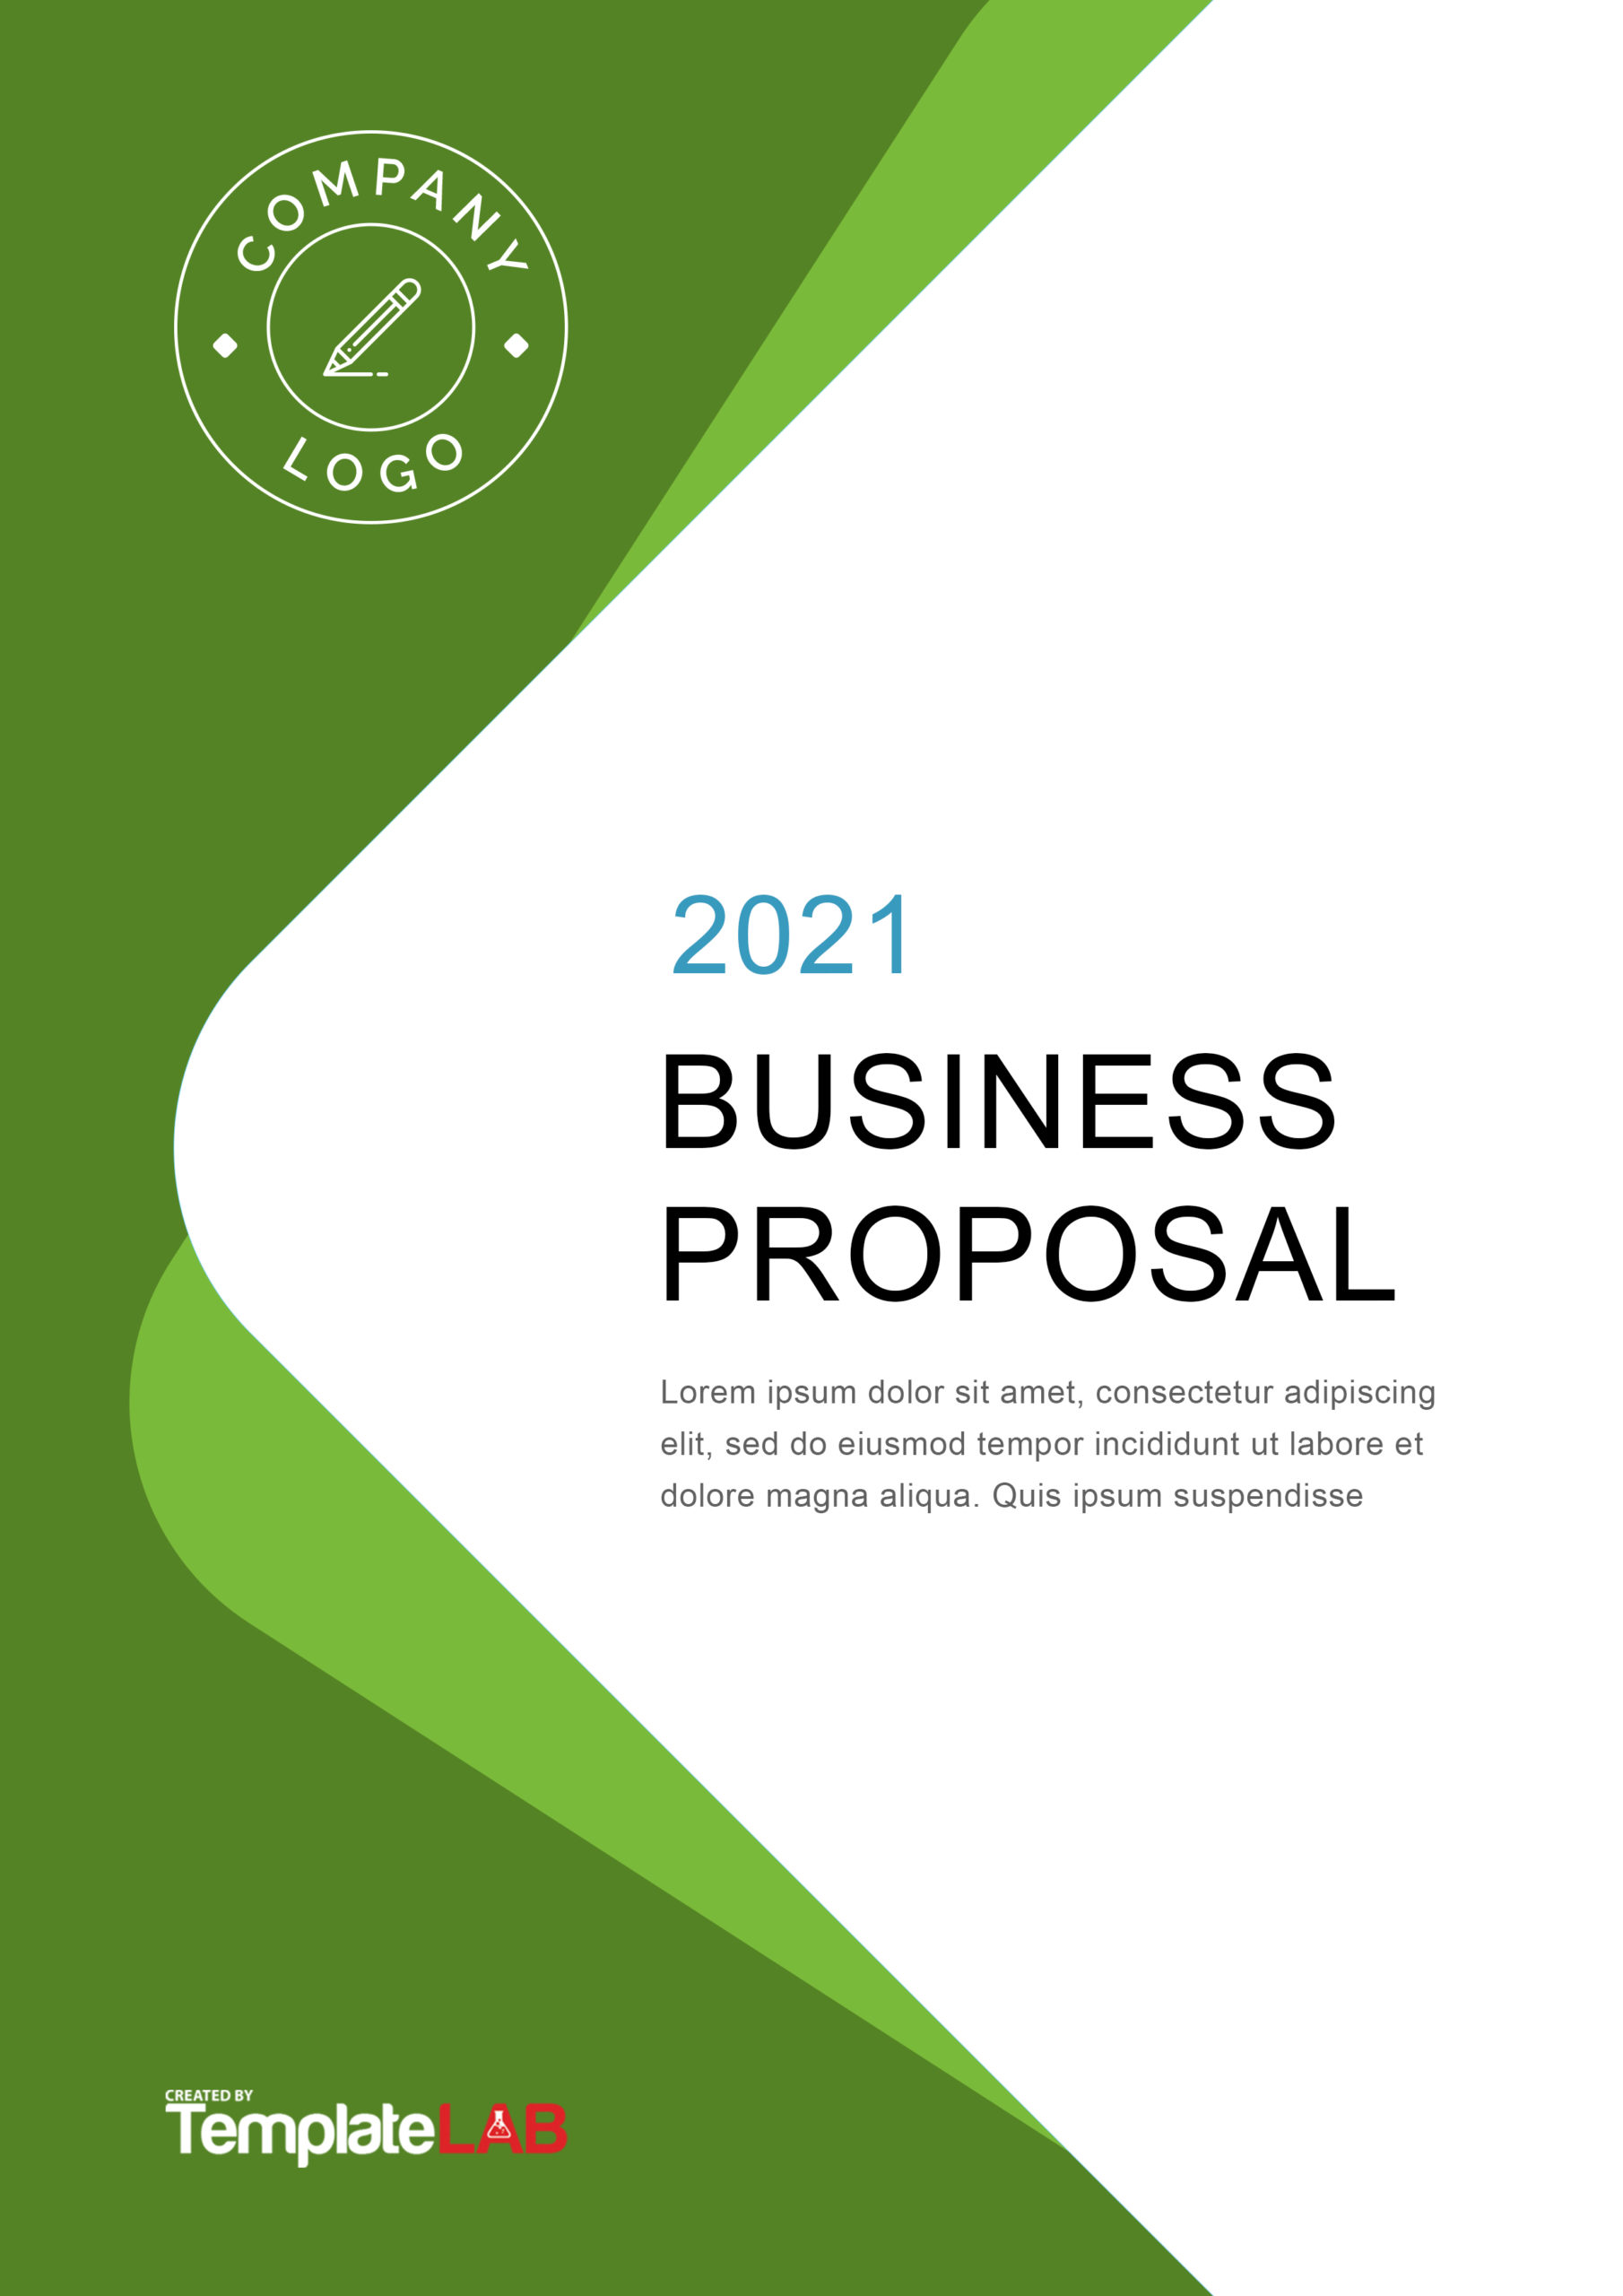 Free Proposal Cover Page Template - TemplateLab.com